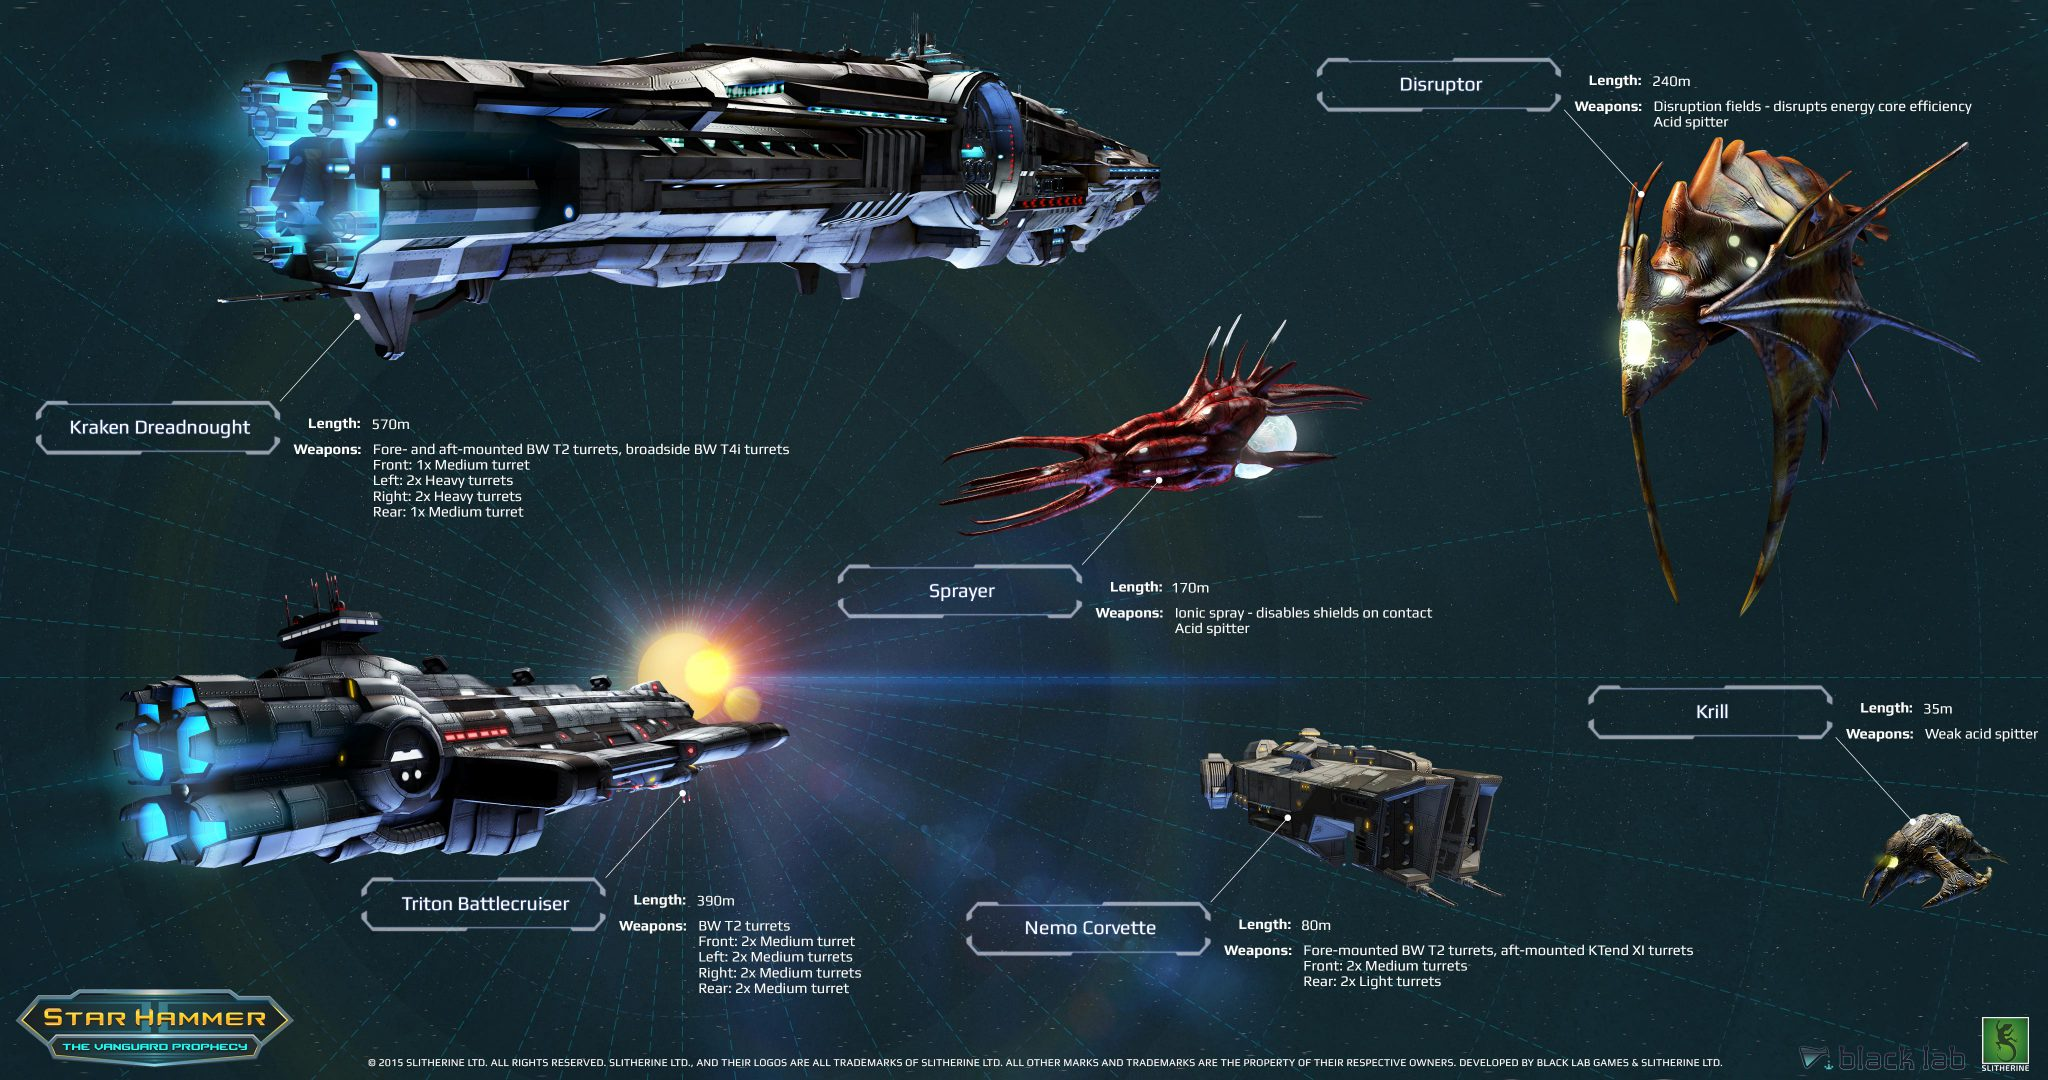 star hammer the vanguard prophecy ship and unit info